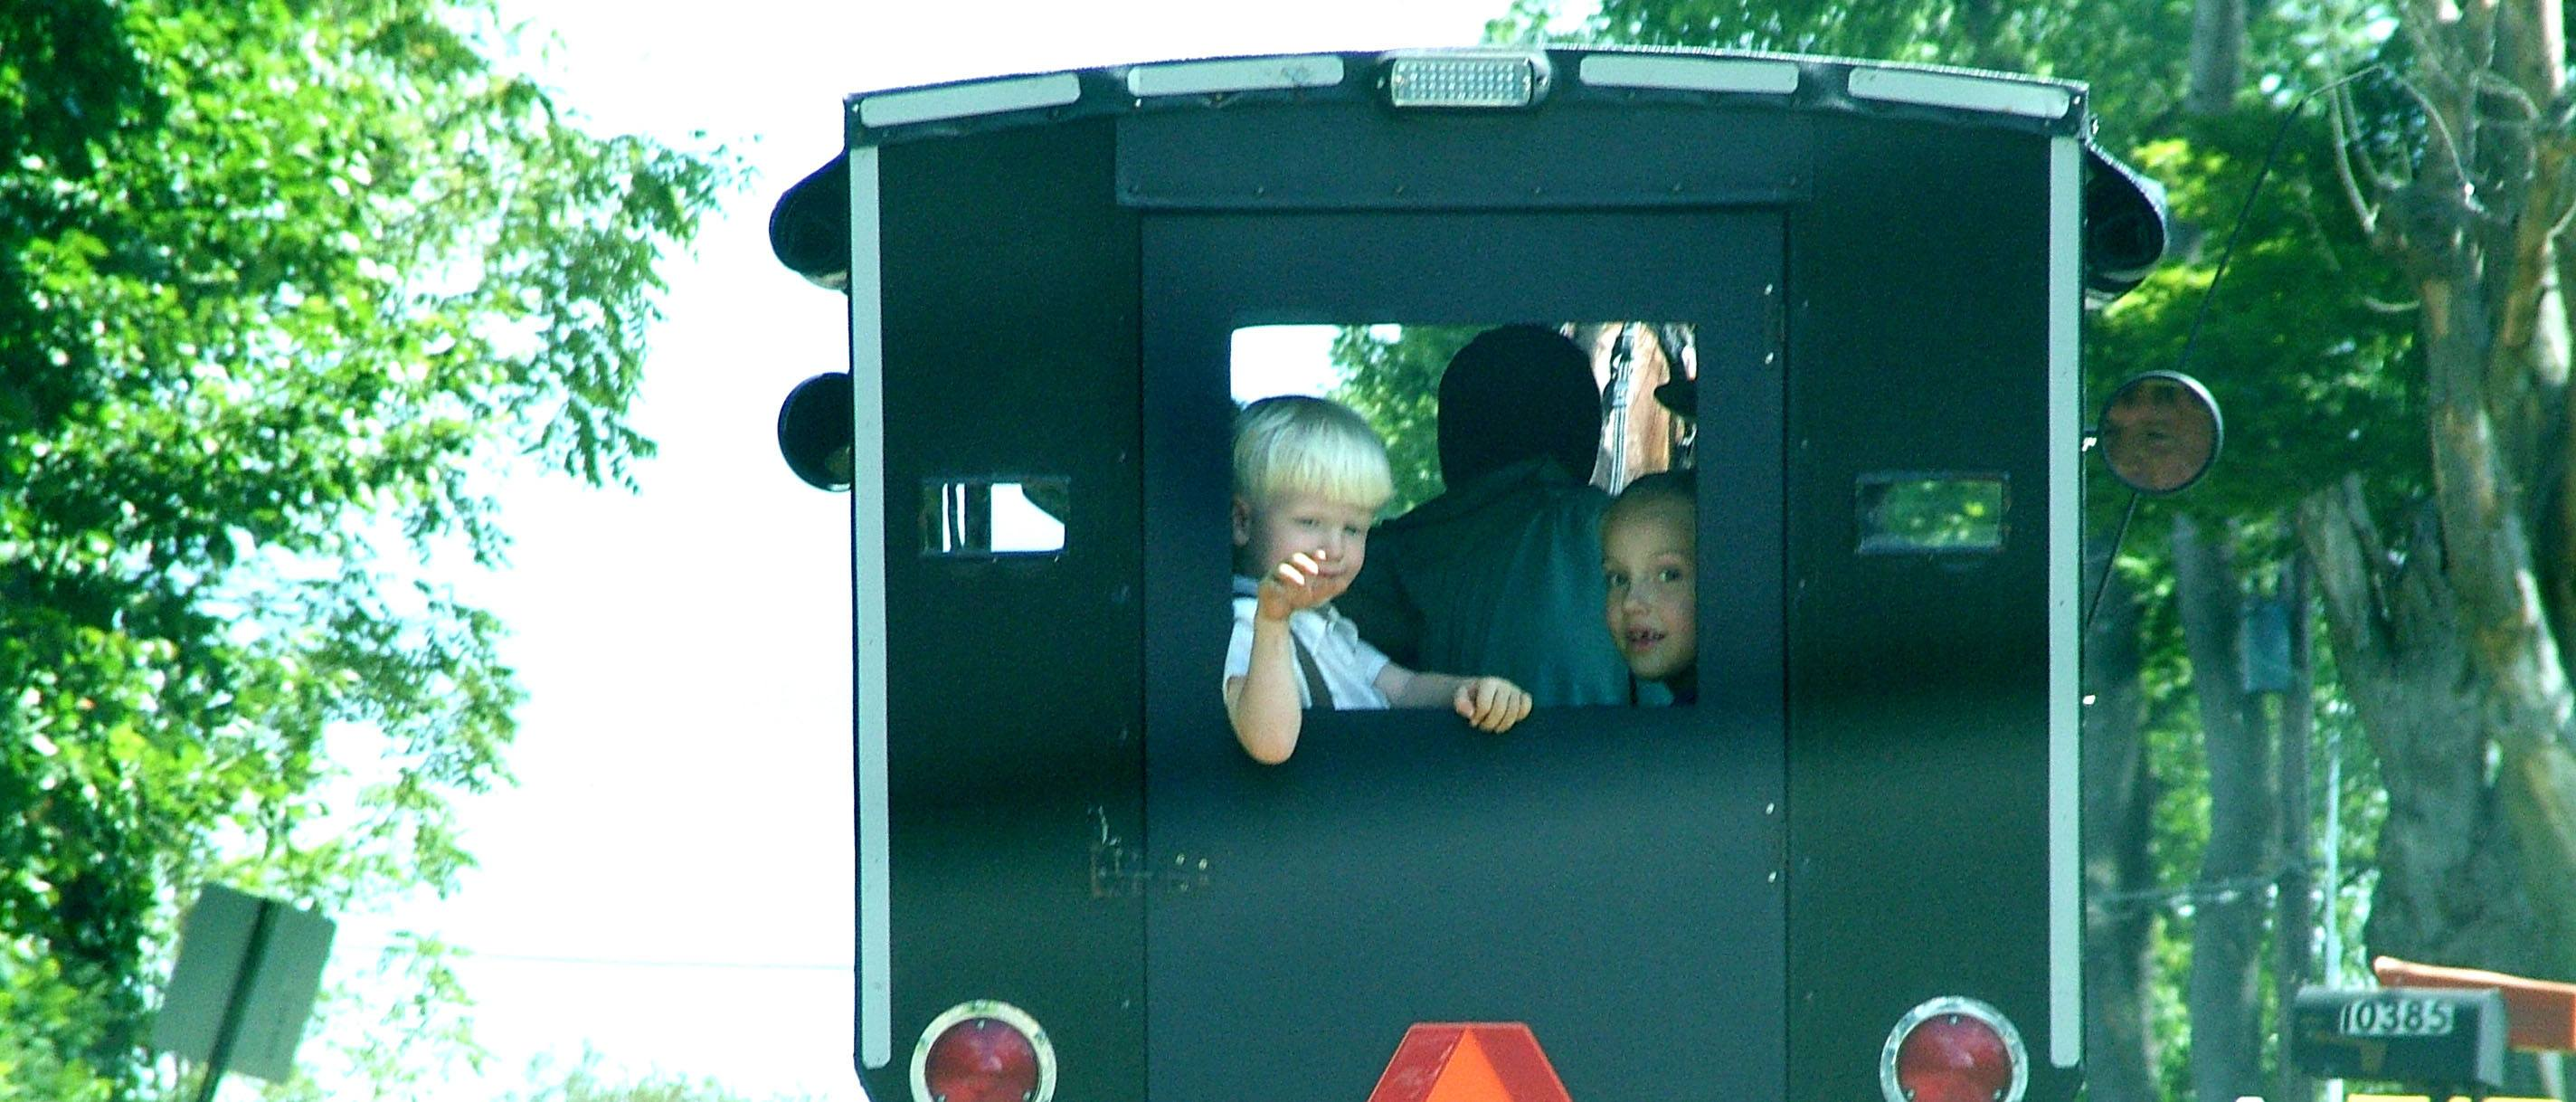 Children peering out of the back window of a buggy